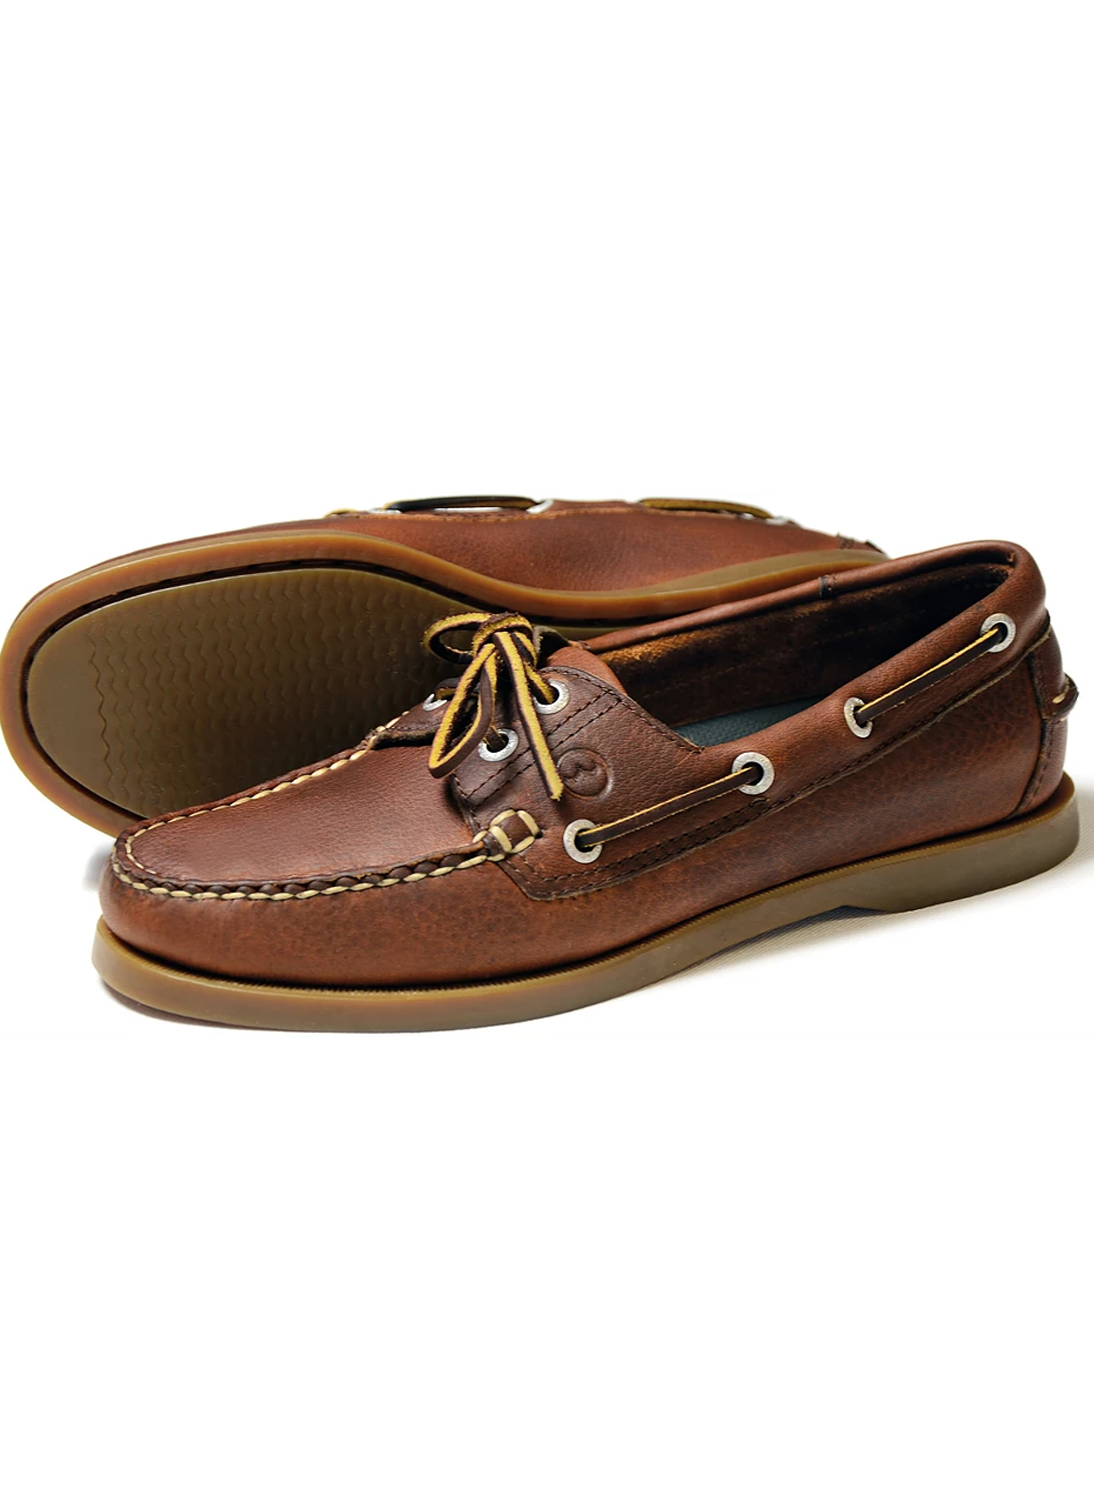 Ladies Polo Boat Shoes